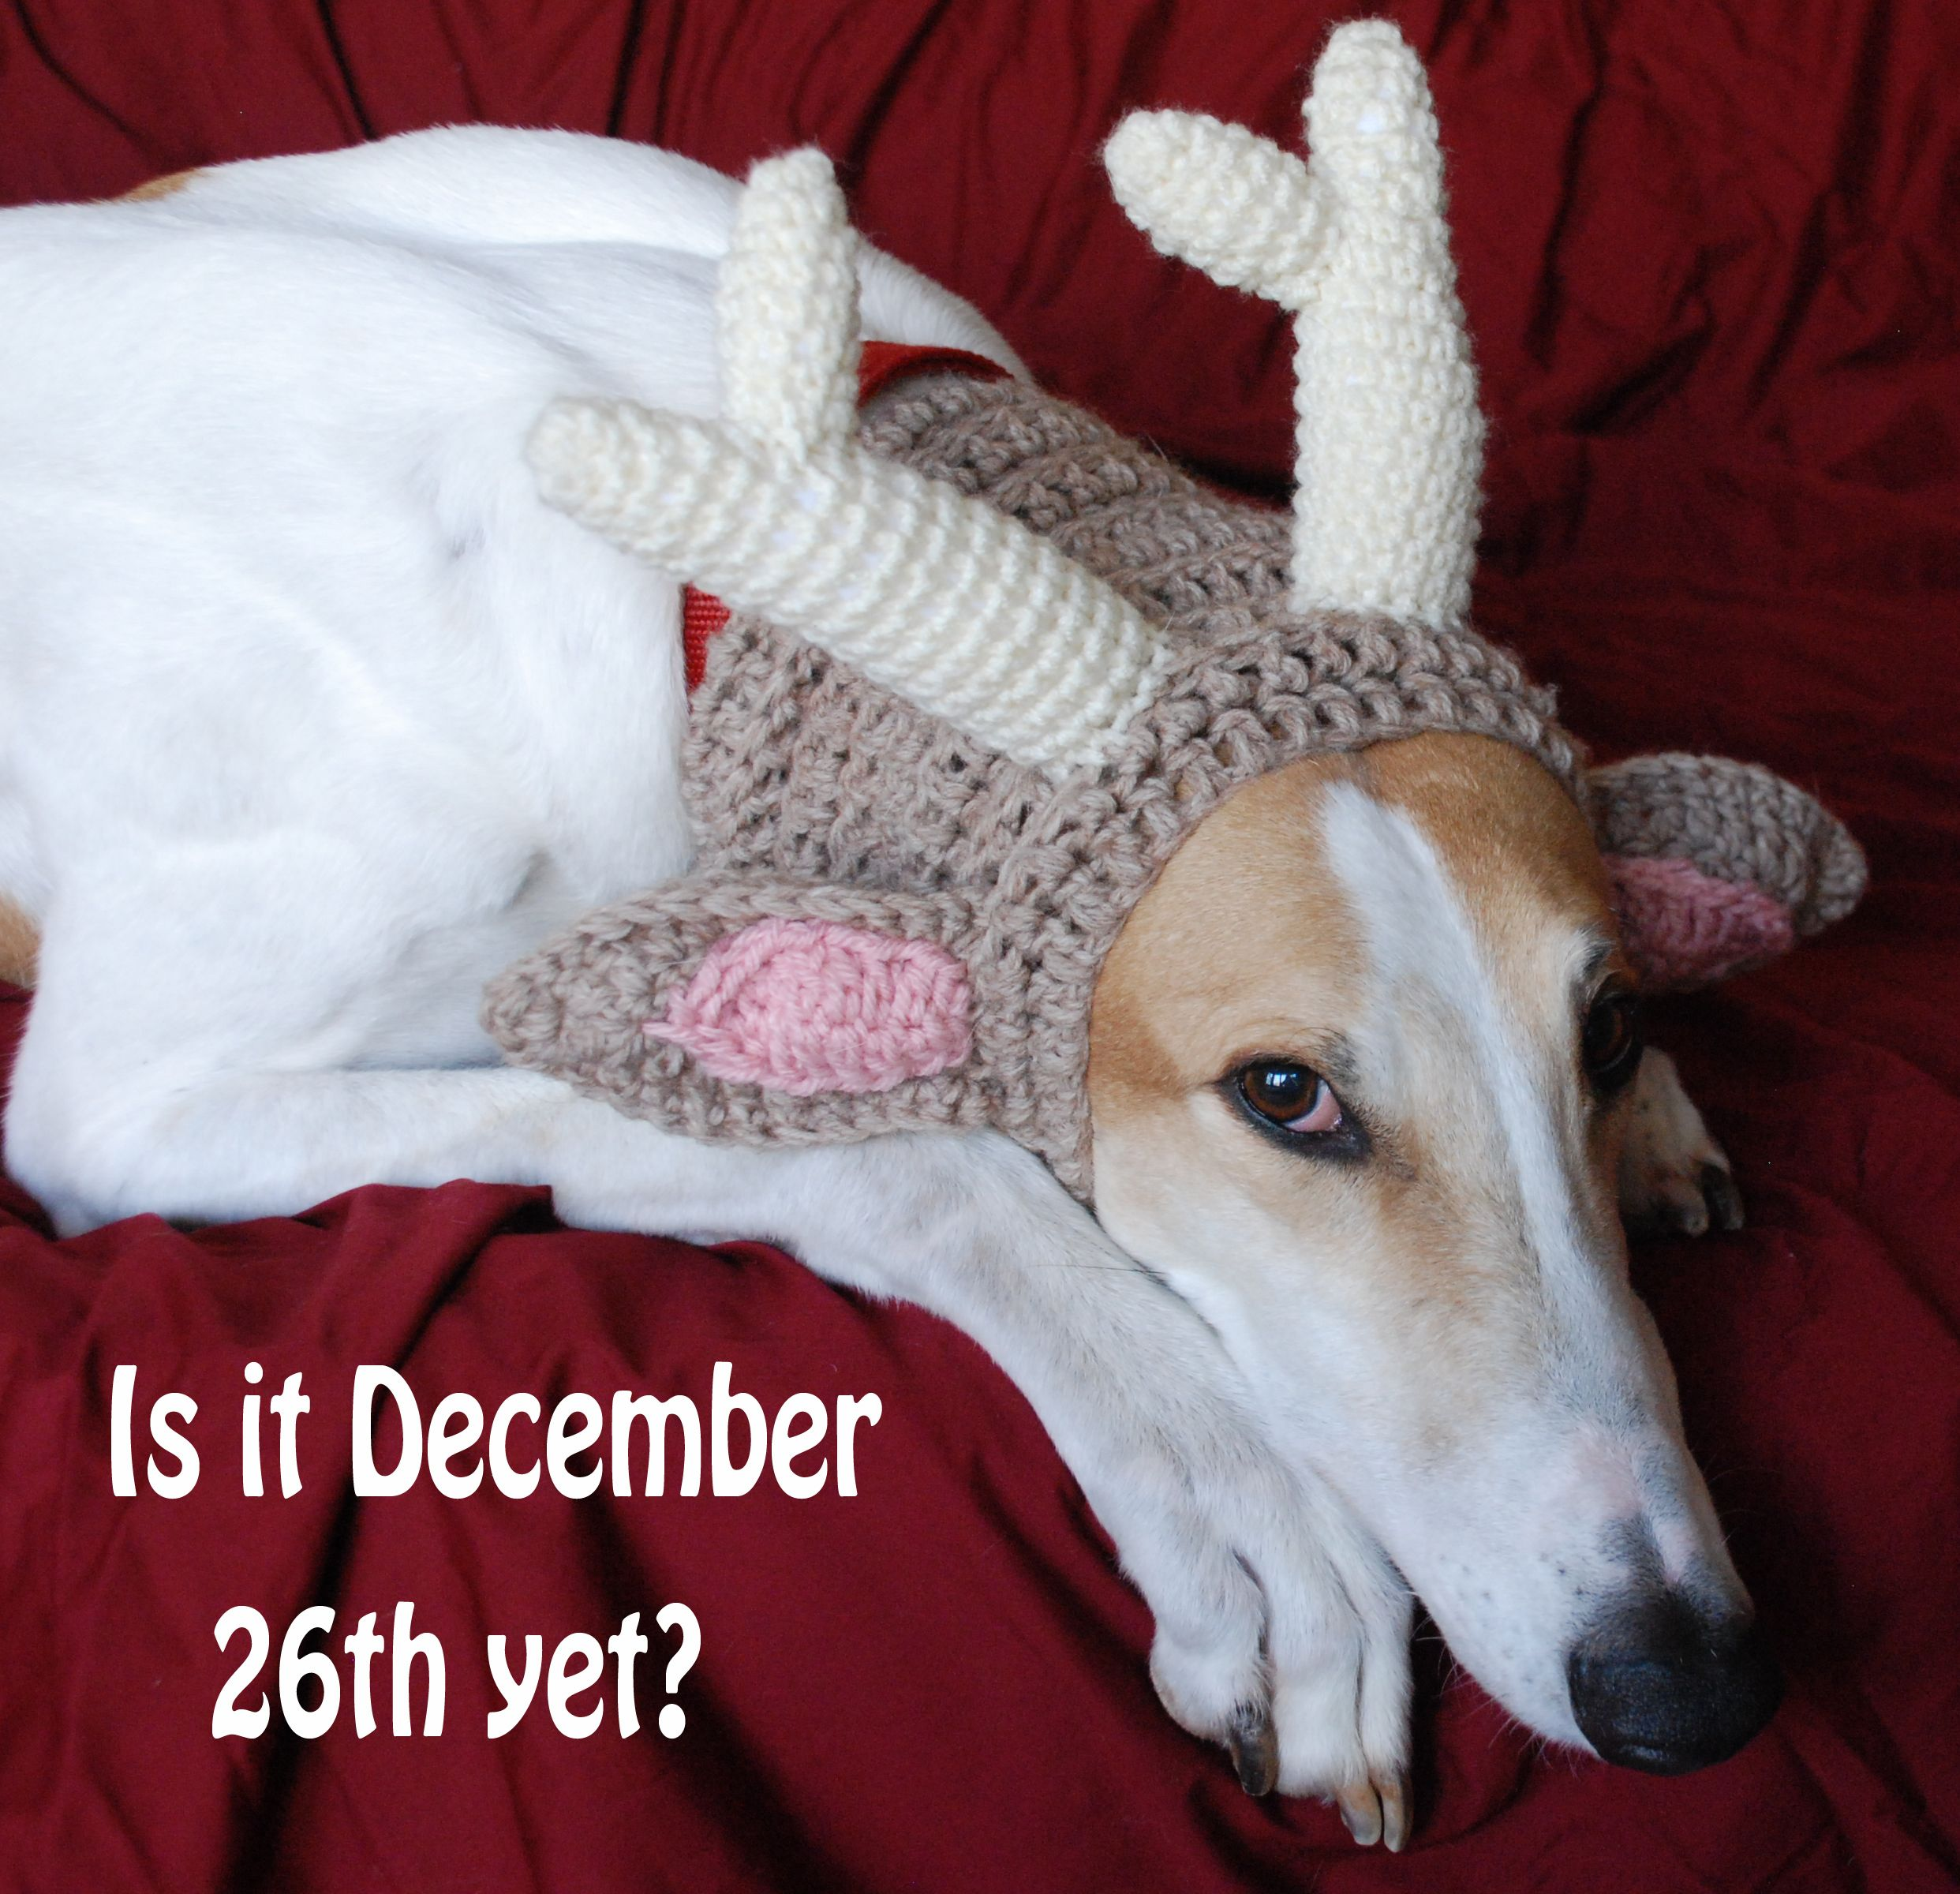 Christmas Story Bumpus Hounds Quote: Moose The Greyhound In His Antlers